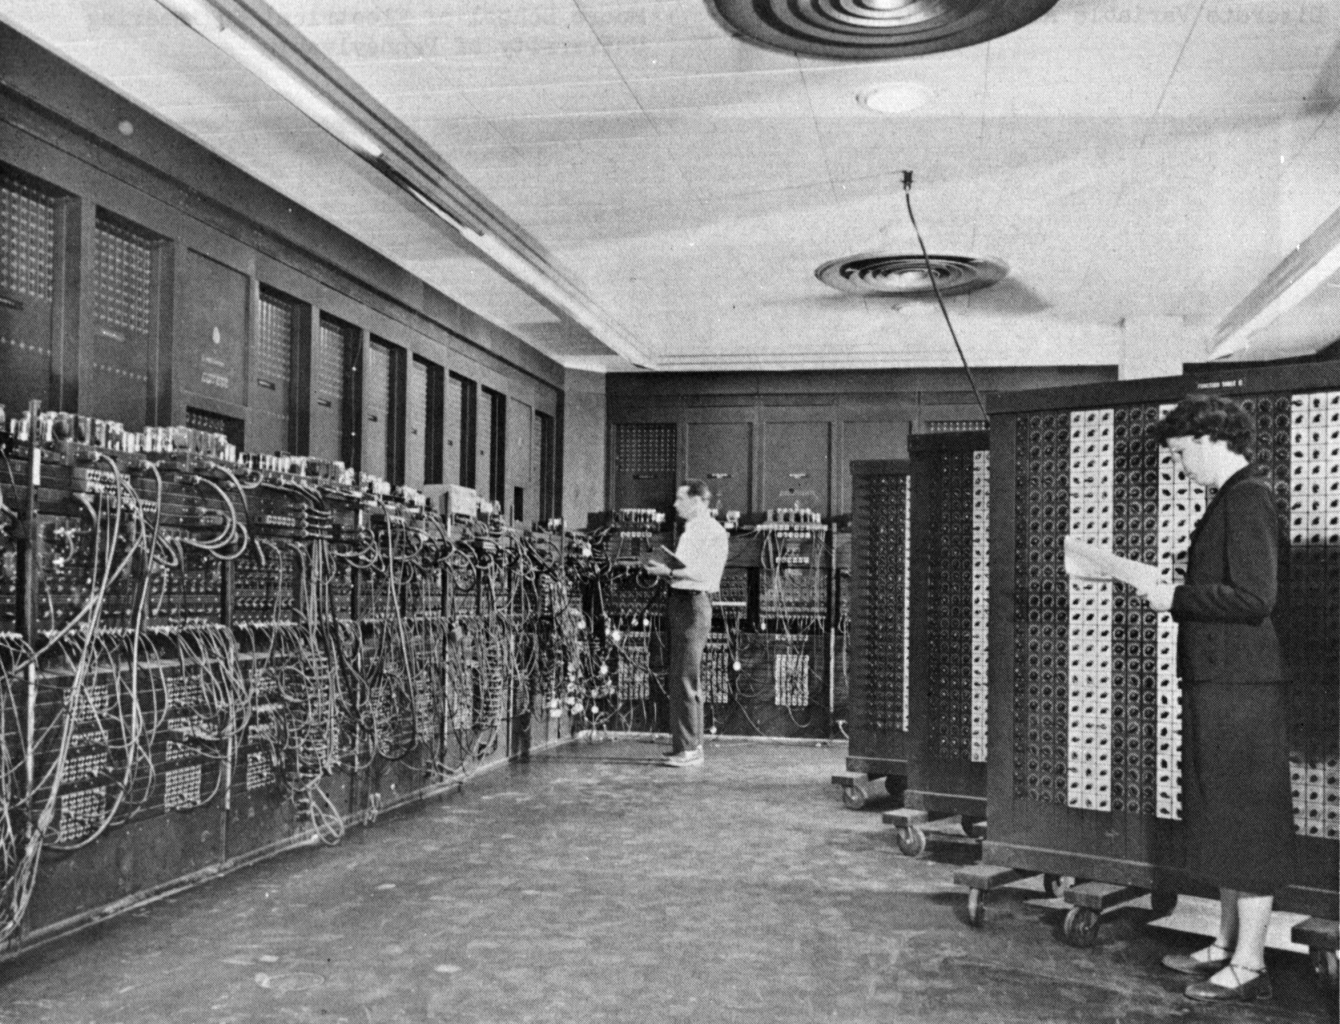 http://upload.wikimedia.org/wikipedia/commons/4/4e/Eniac.jpg